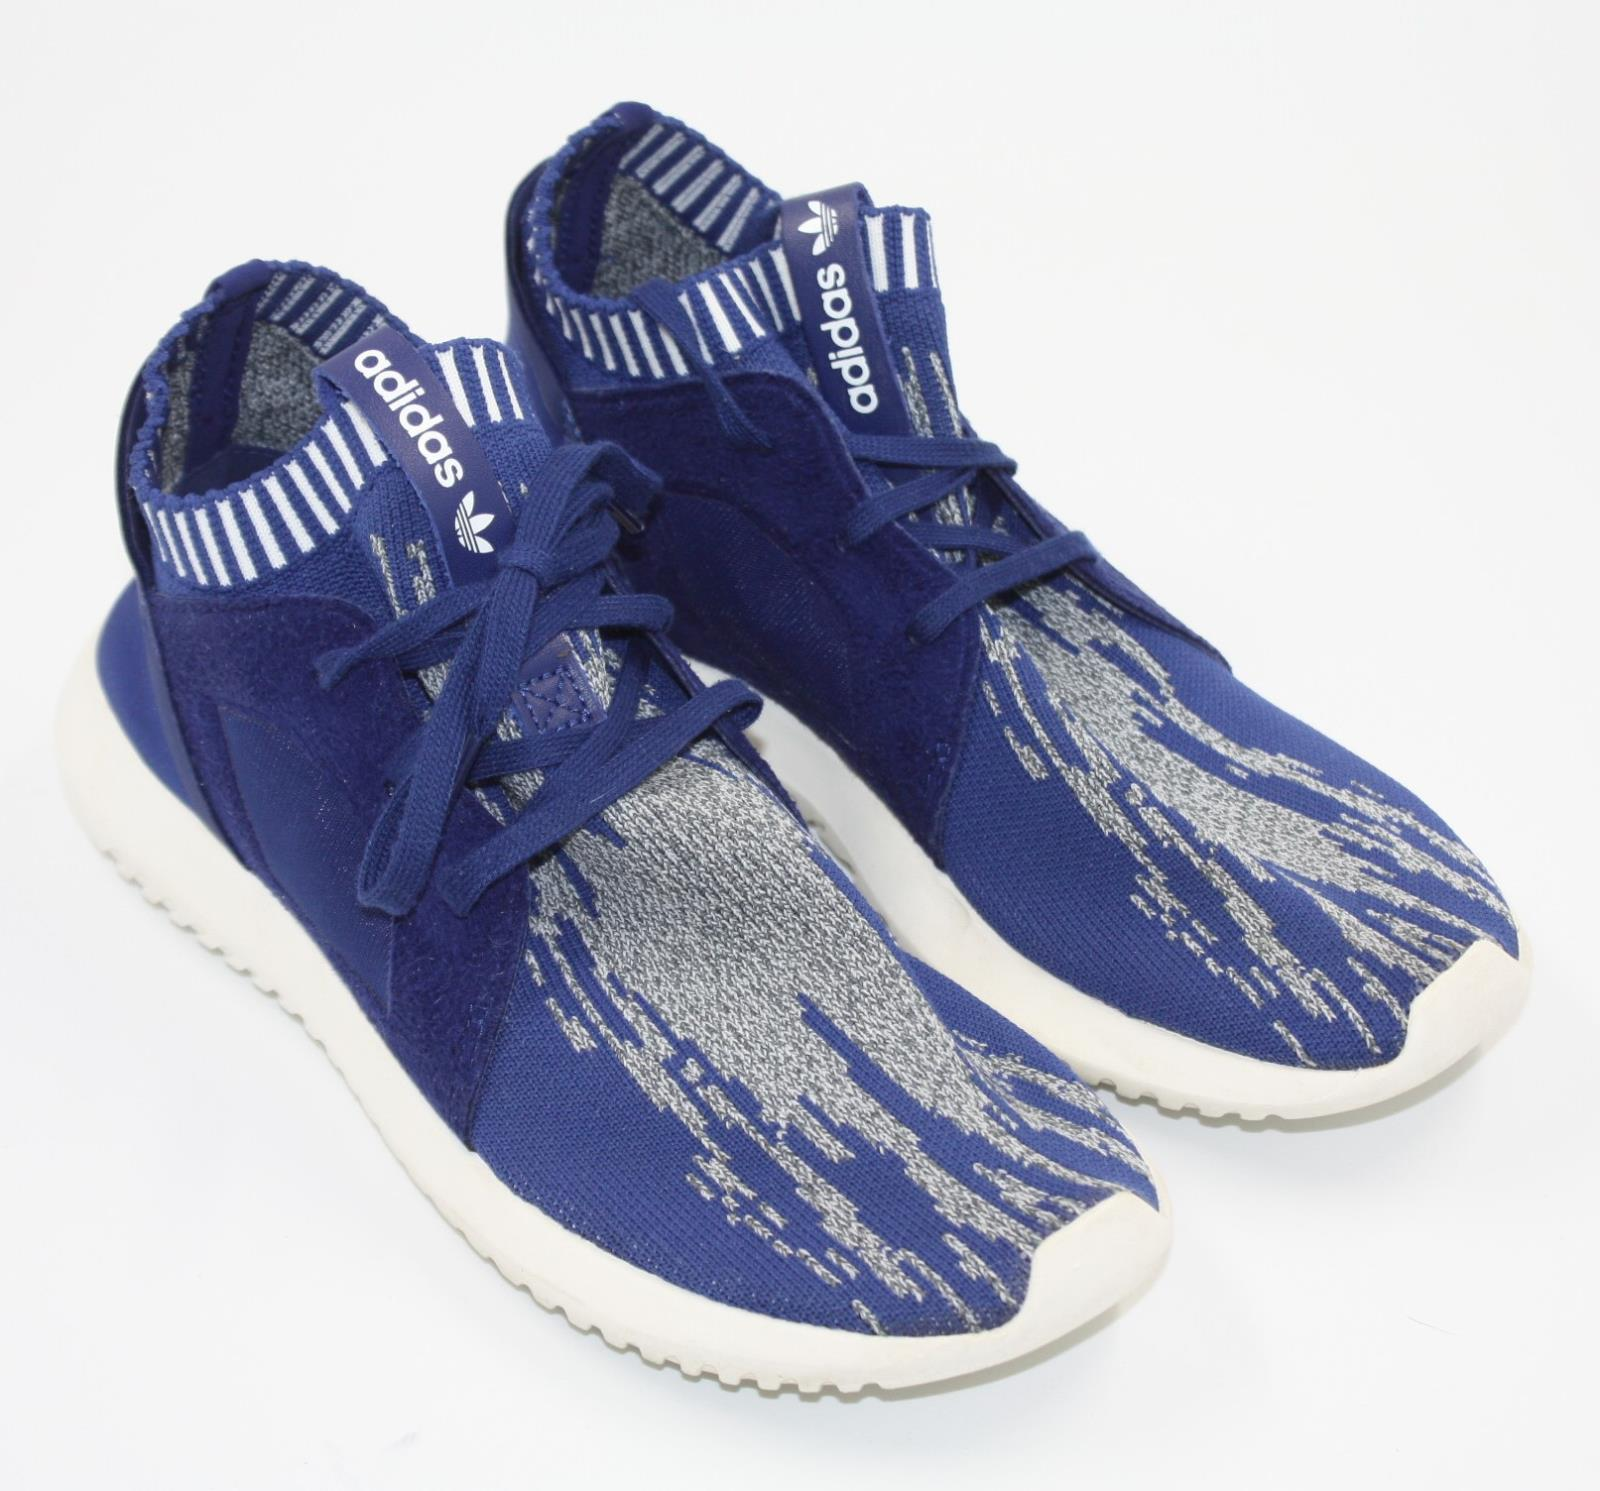 san francisco koko kokoelma hyvä myynti Details about Adidas Tubular Defiant PK Ladies Womens Blue Running Sneakers  Shoes Size 7.5M